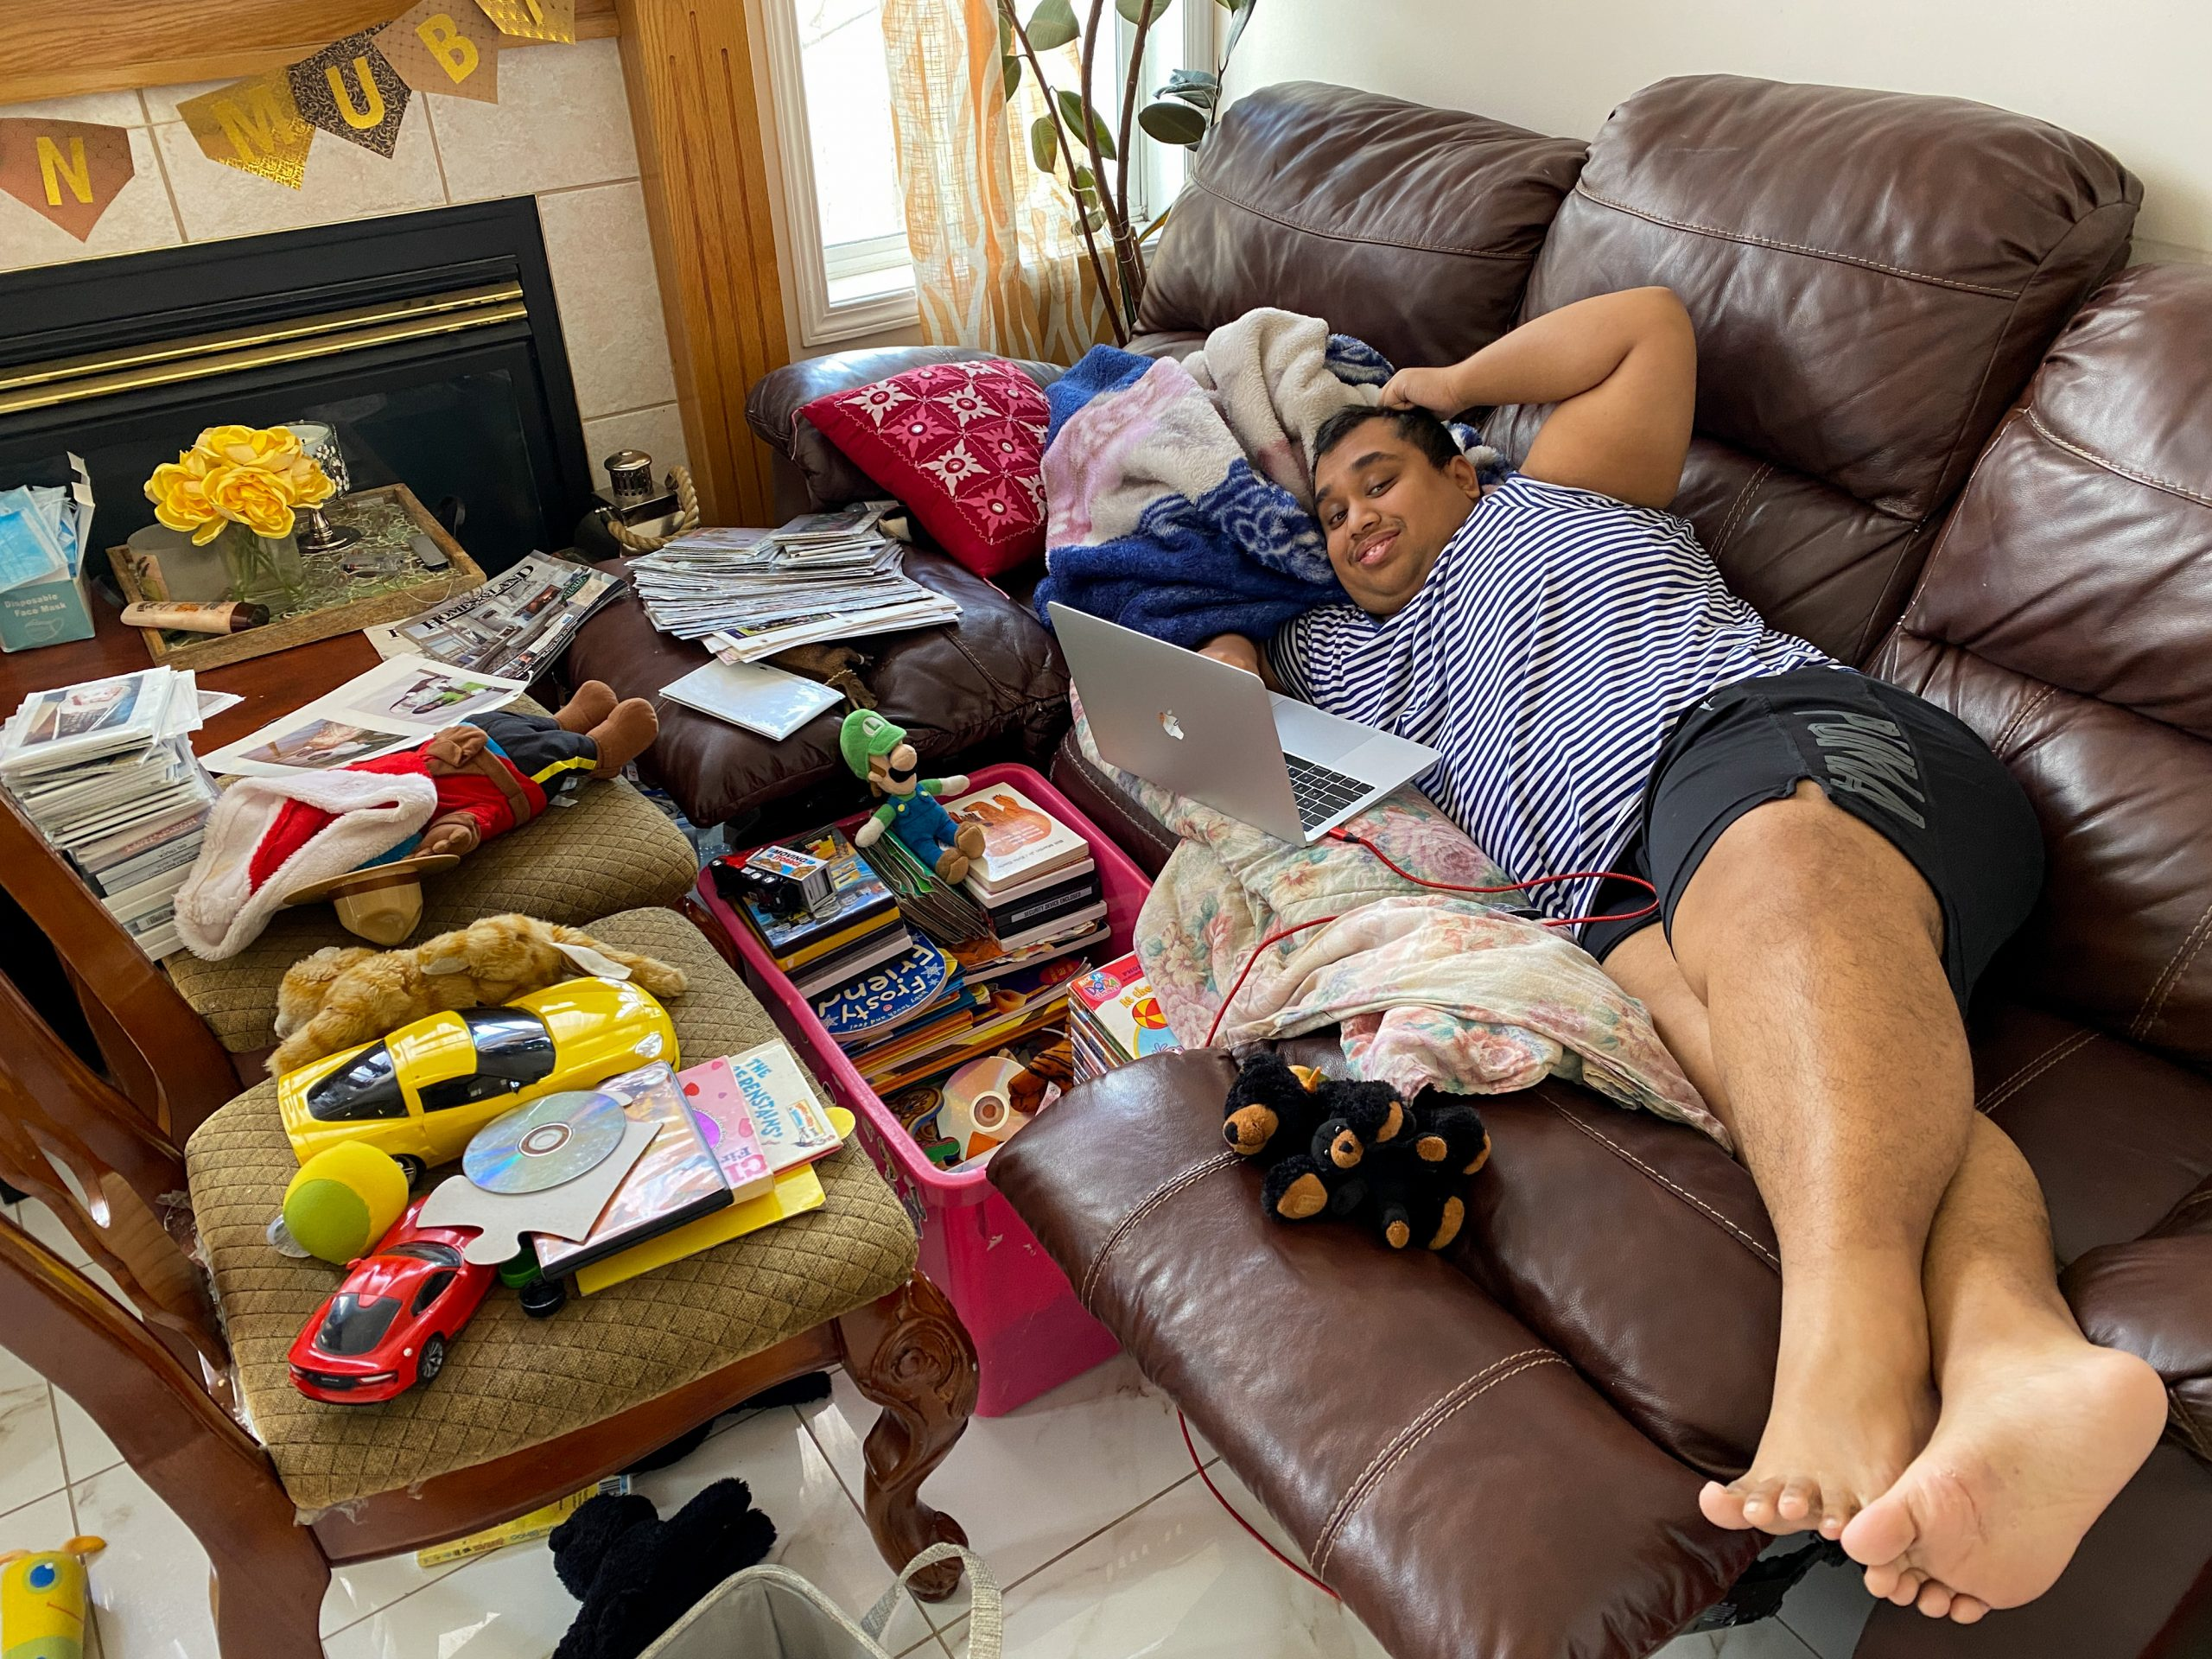 Ridwan lying down on the couch with the laptop on front of him